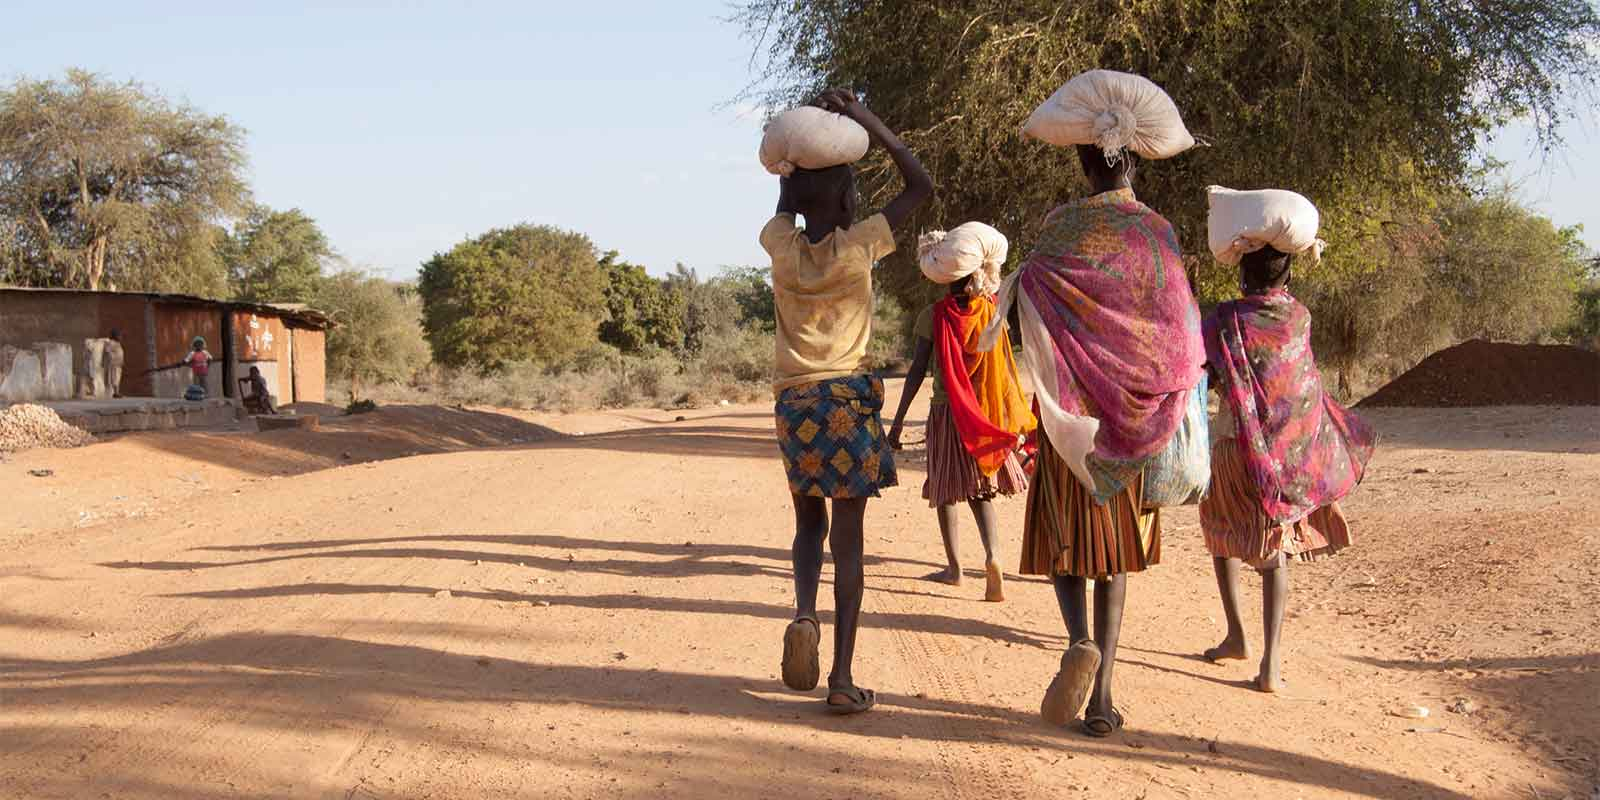 African women carrying supplies to their village community